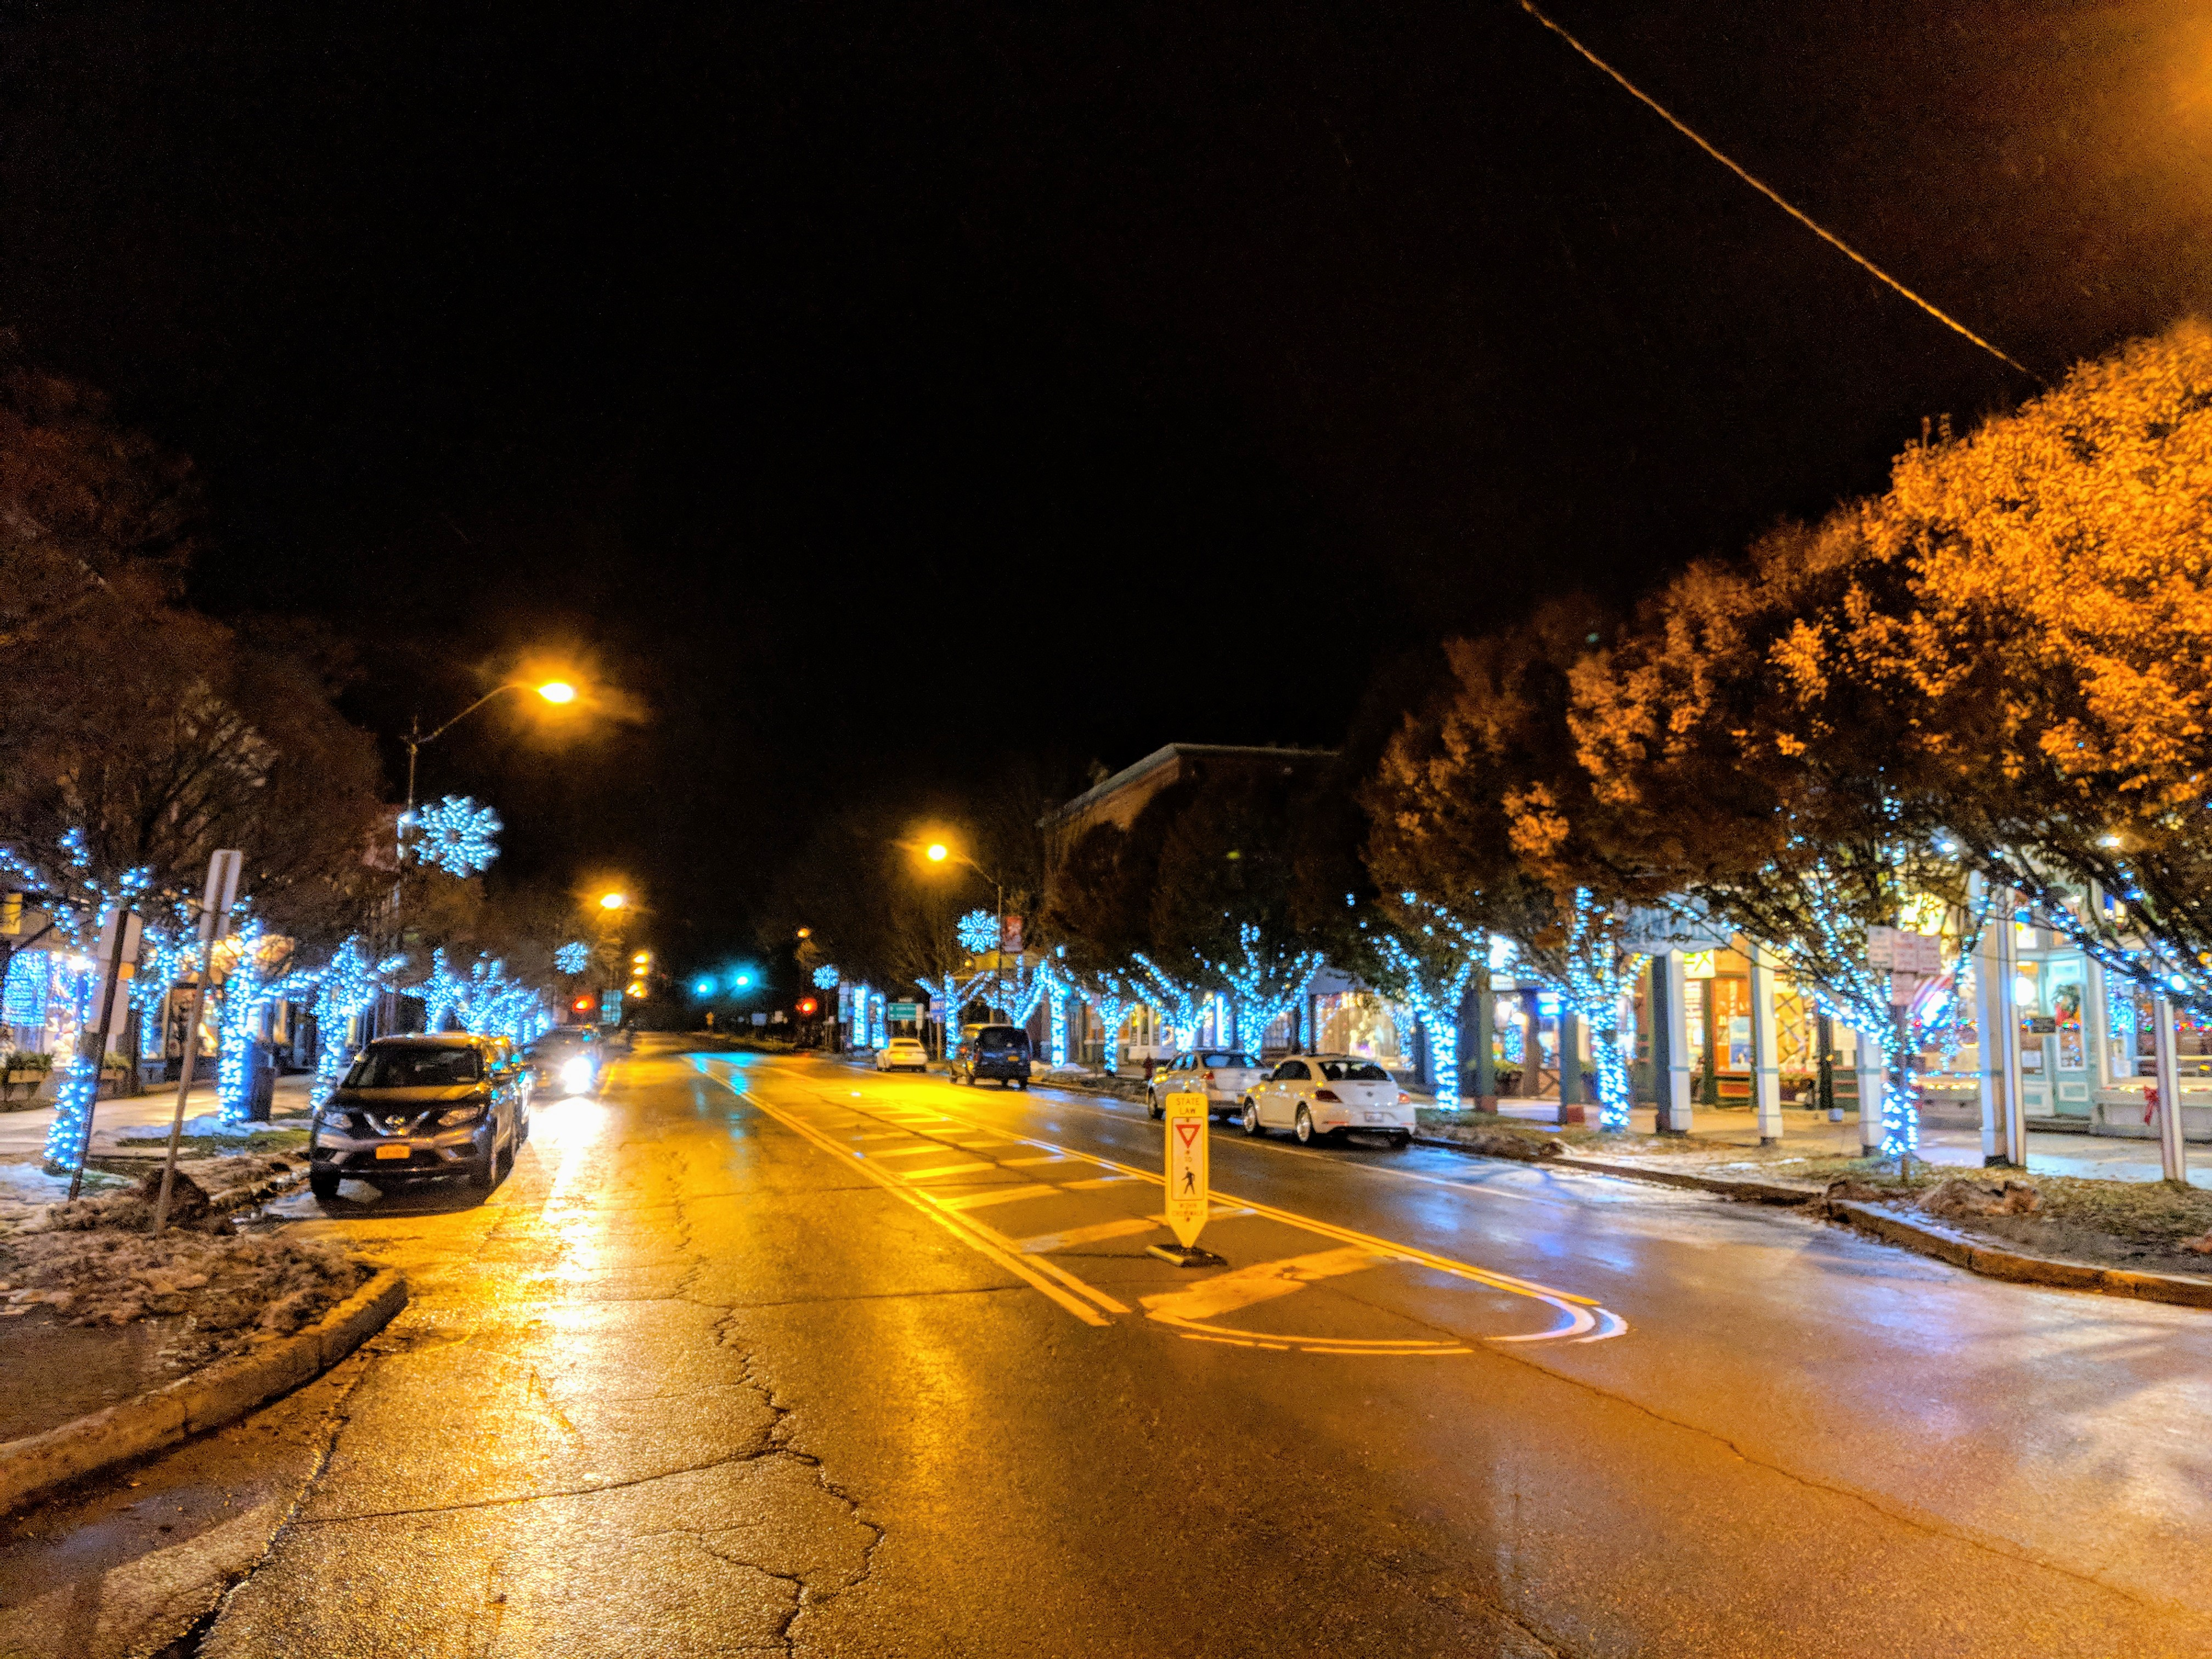 Village winter lights